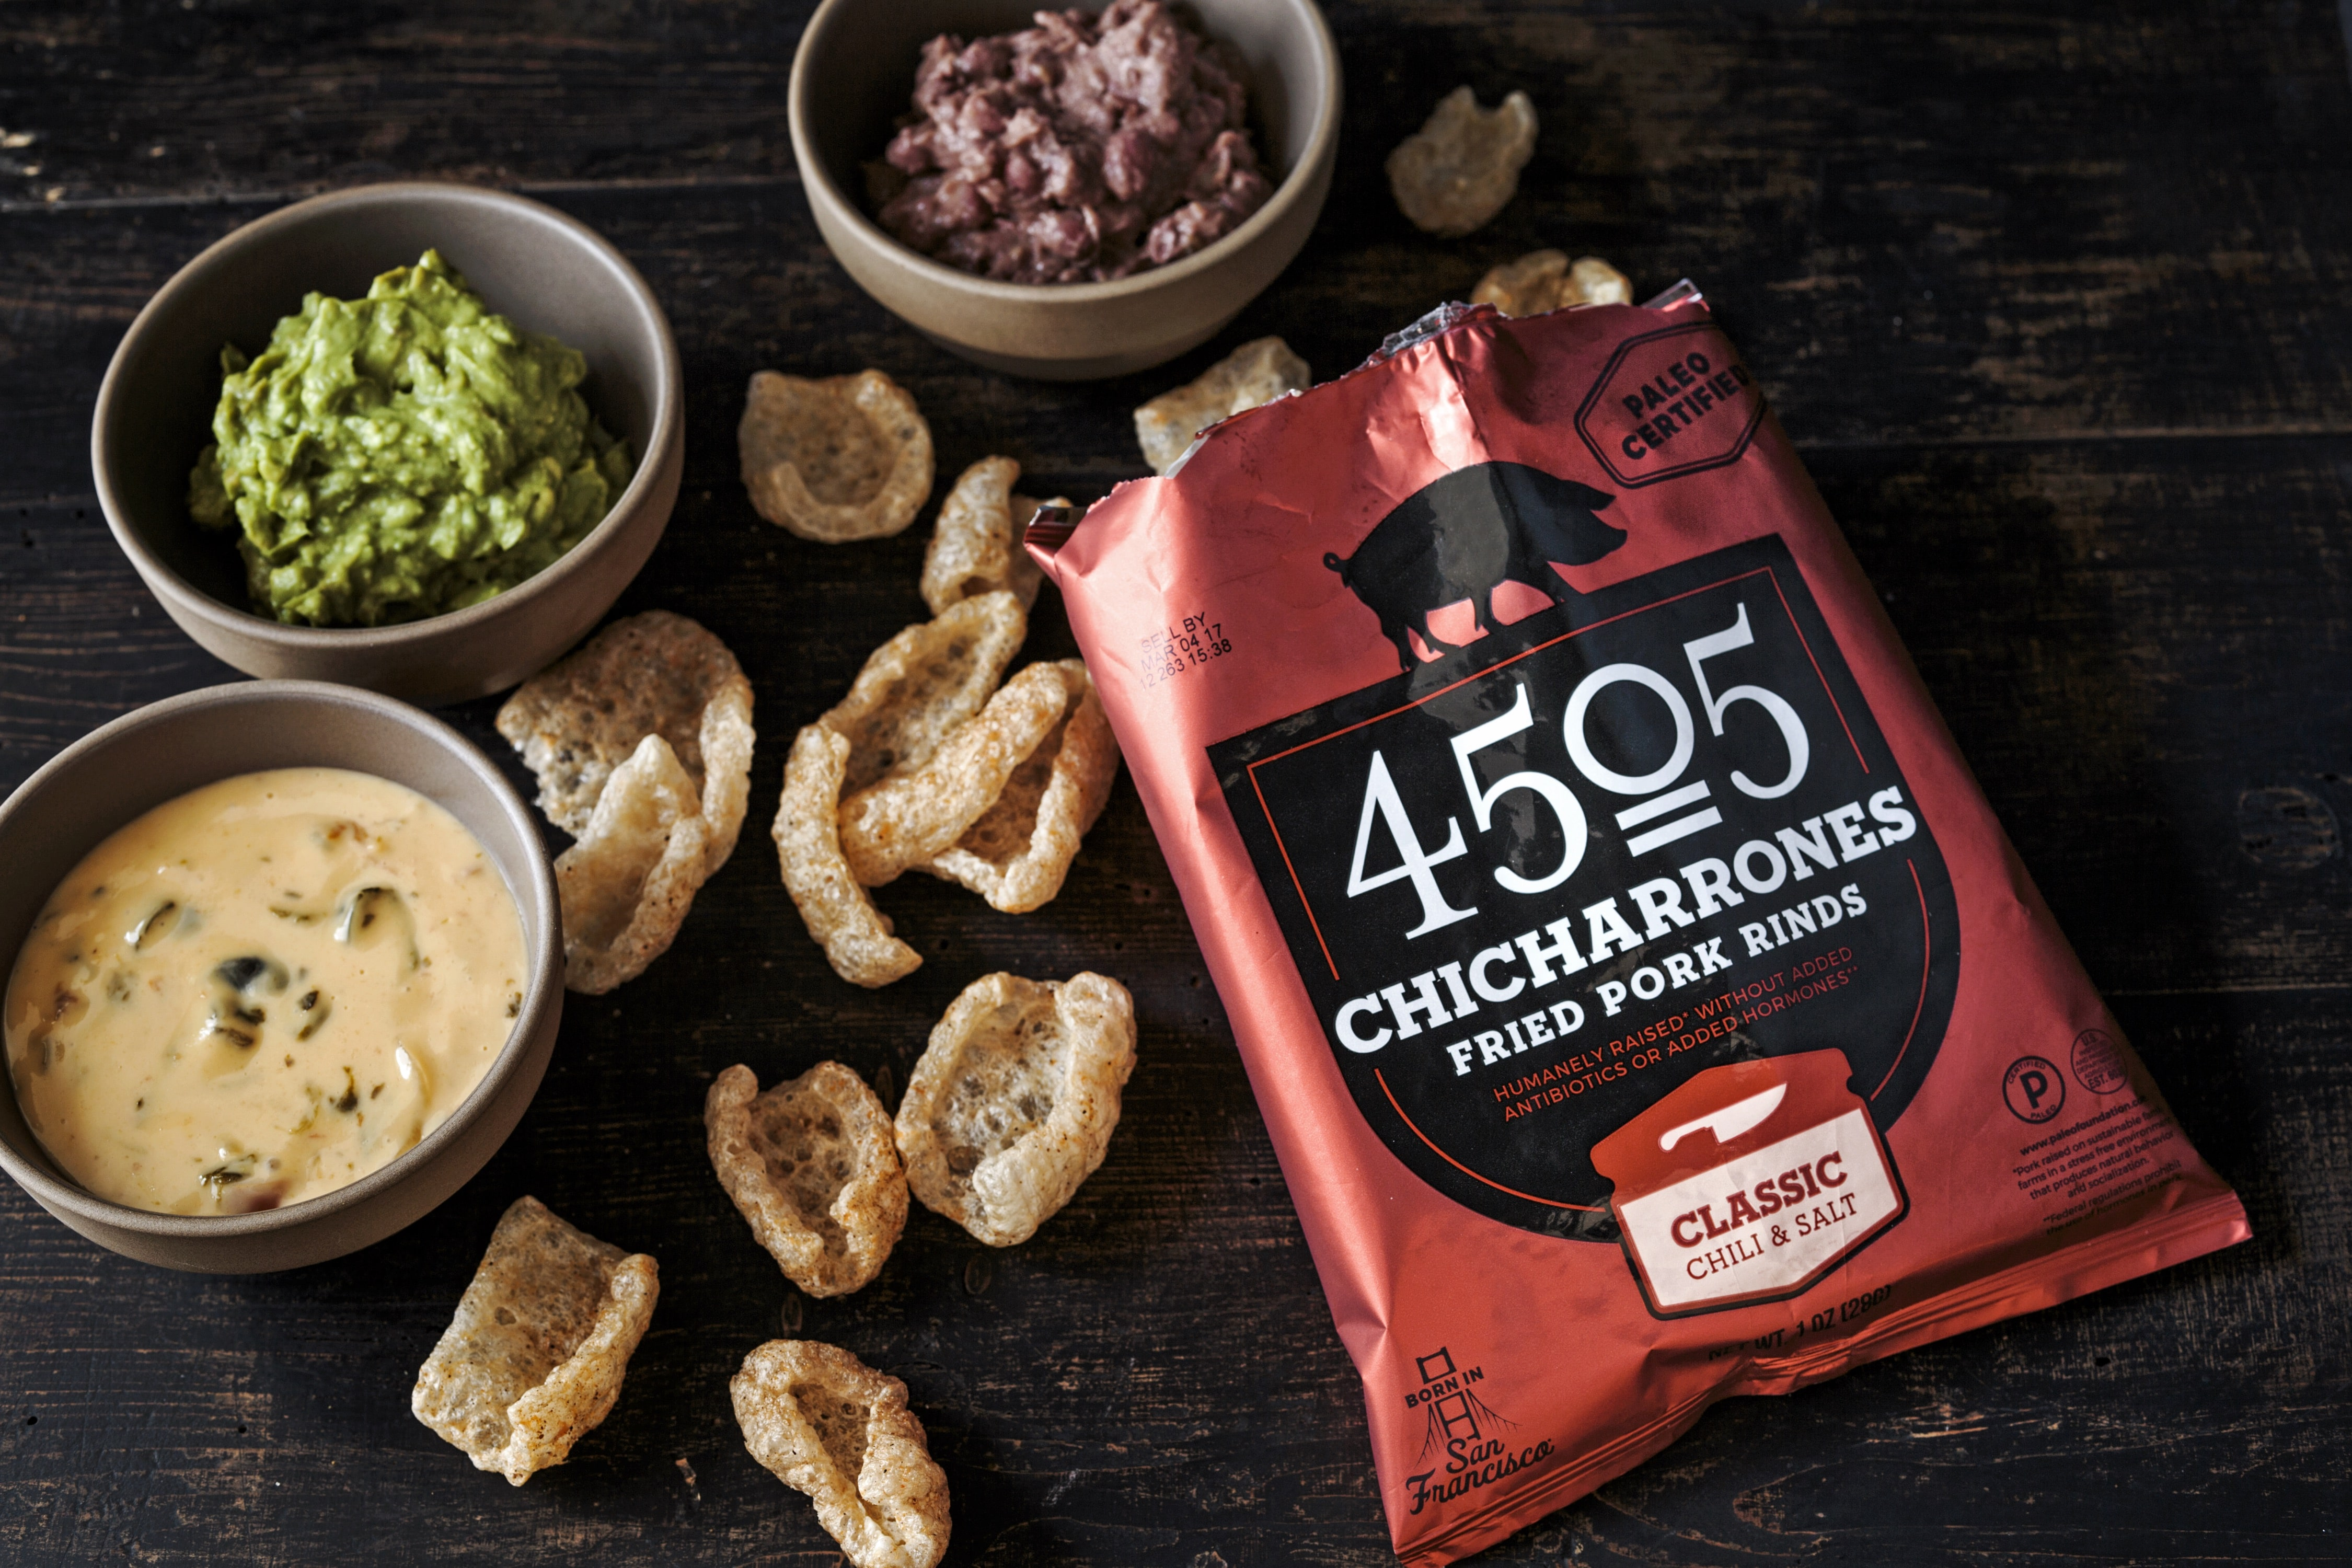 Classic Chili & Salt - 4505 Chicharrones - 4505 Meats is a burgers and BBQ joint which is a Producer of all things meaty. 4505 Meats is dedicated to flavor and quality, adding our own unique touches to create exceptional meaty products. #paleo #certifiedpaleo